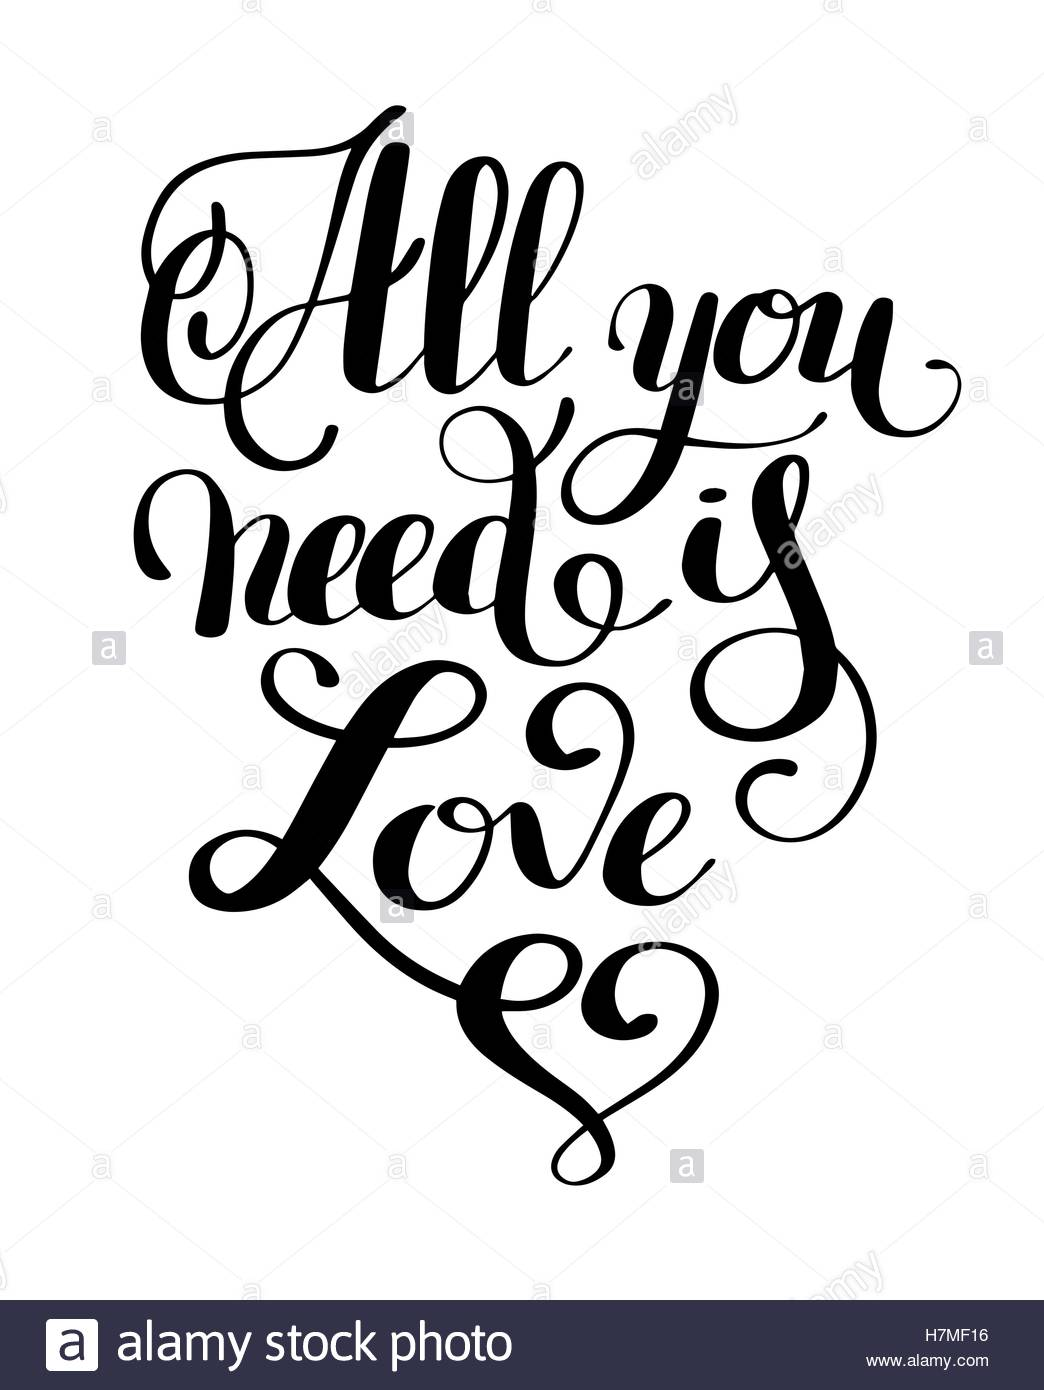 1044x1390 All You Need Is Love Handwritten Inscription Calligraphic Letter